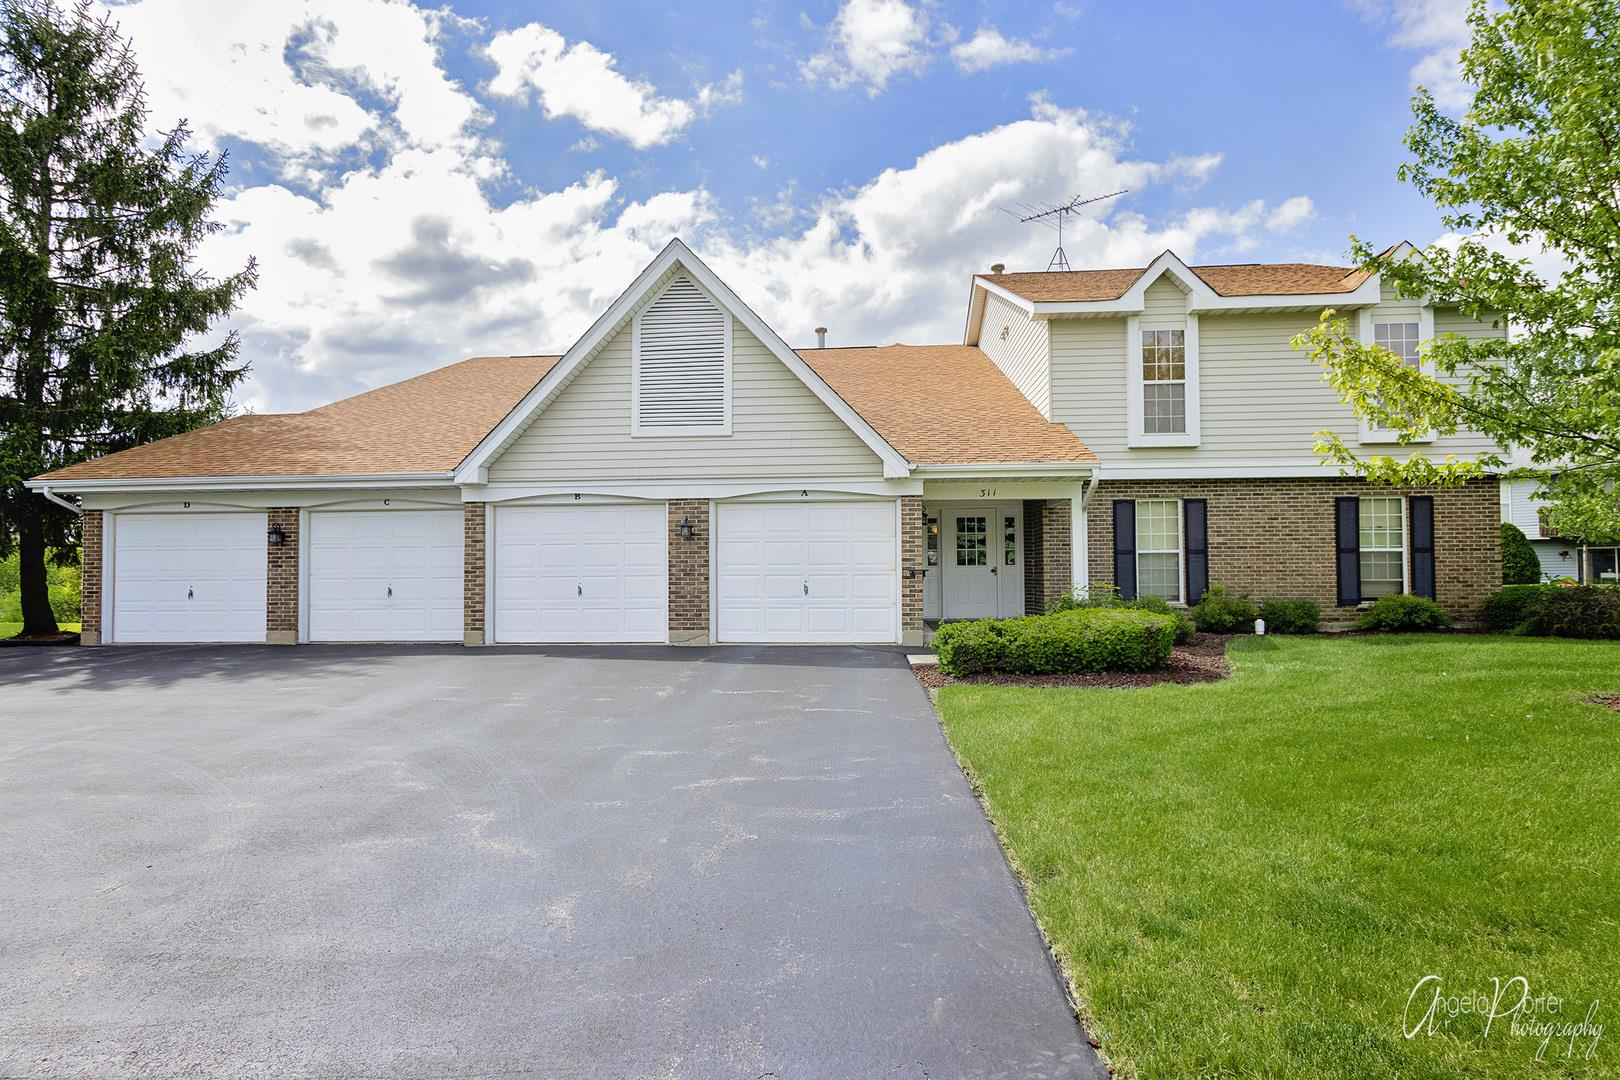 311 Creekside Trail #C, McHenry, IL 60050 - #: 10732630